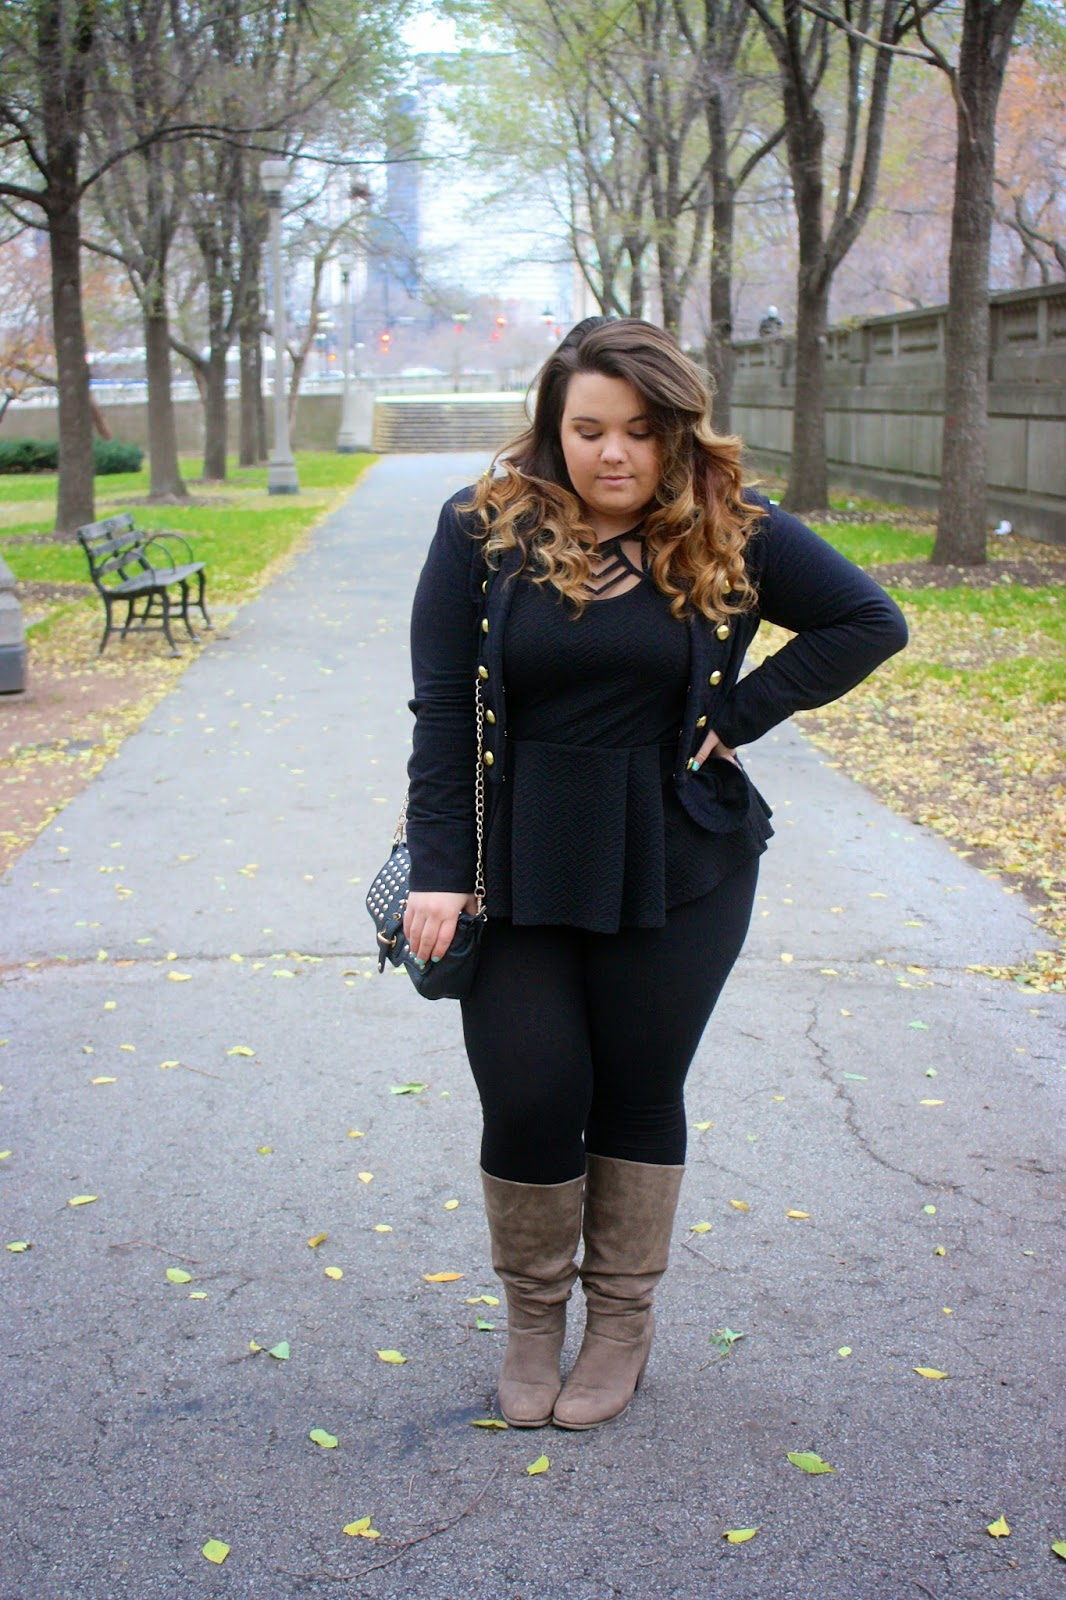 fatshion, fashion blogger, fat girl fashion, military style jacket, all black outfits, peplum, wide calf boots, curvy fashionista, thick girls, chicago, natalie craig, natalie in the city, forever 21 plus, winter trends 2014, curly ombre hair, plus size fashion blogger, fashion blogger, gold buttons, black spike clutch